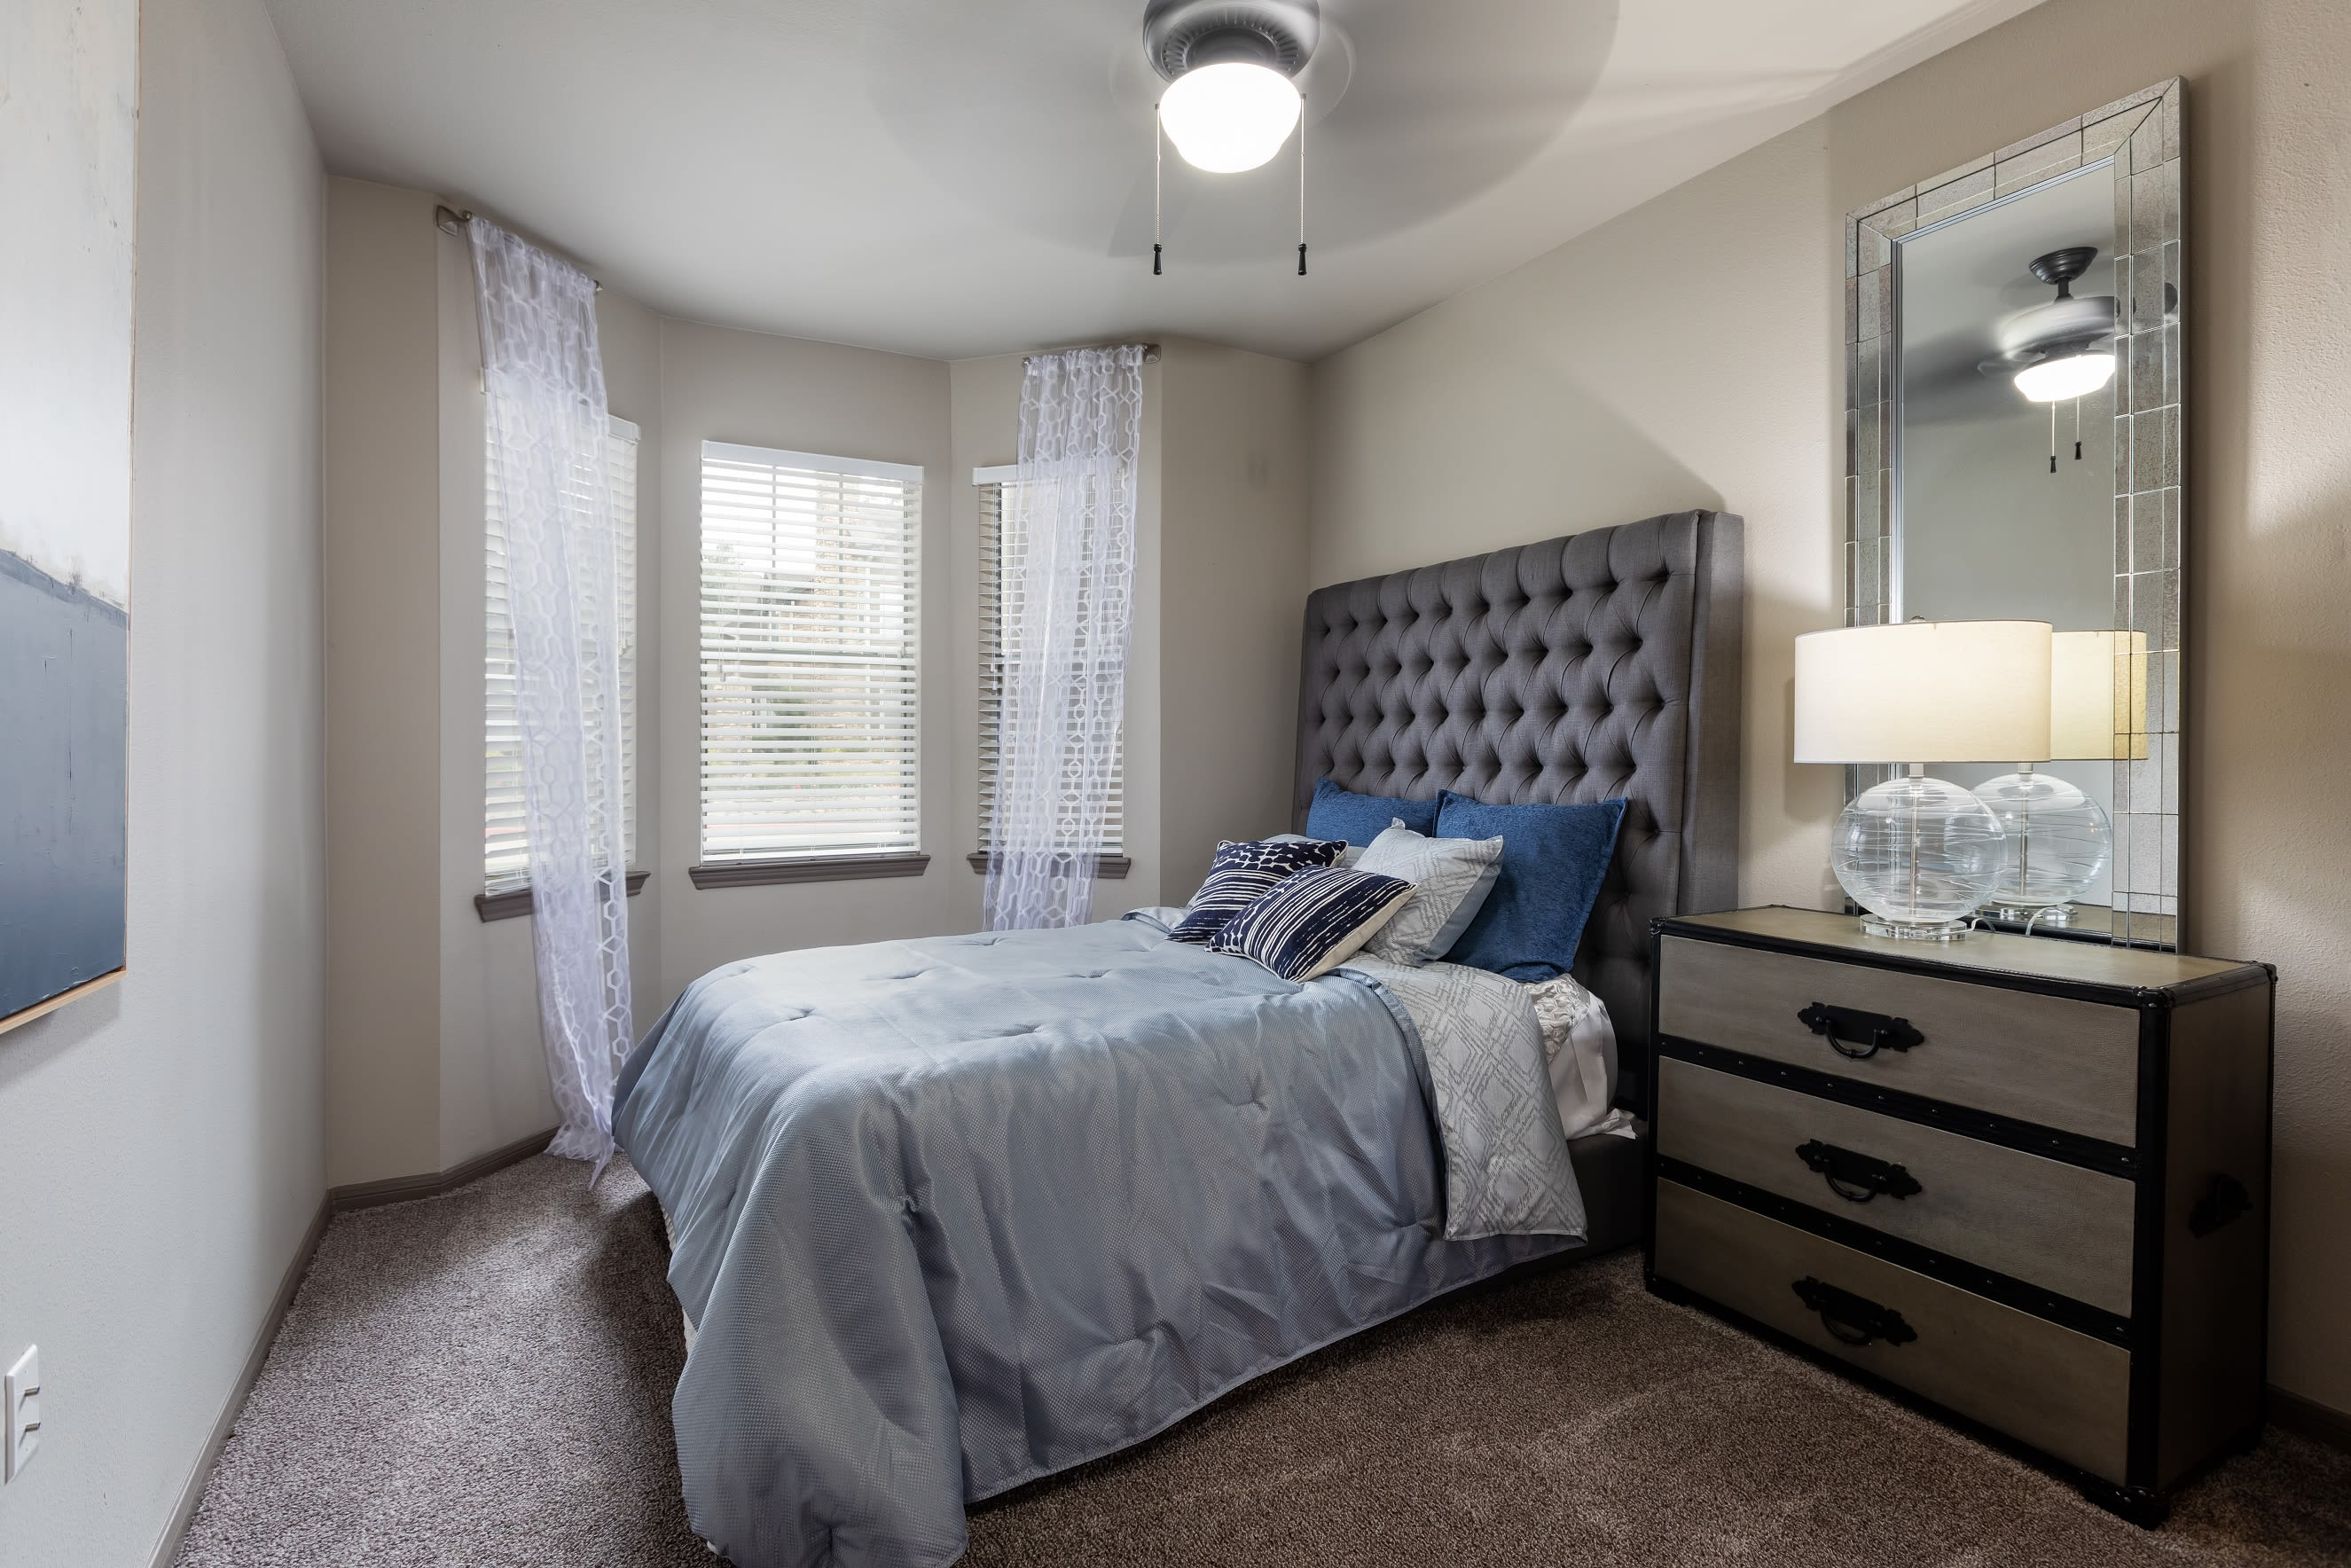 View virtual tour for 1 bedroom 1 bathroom unit at Artisan at Lake Wyndemere in The Woodlands, Texas